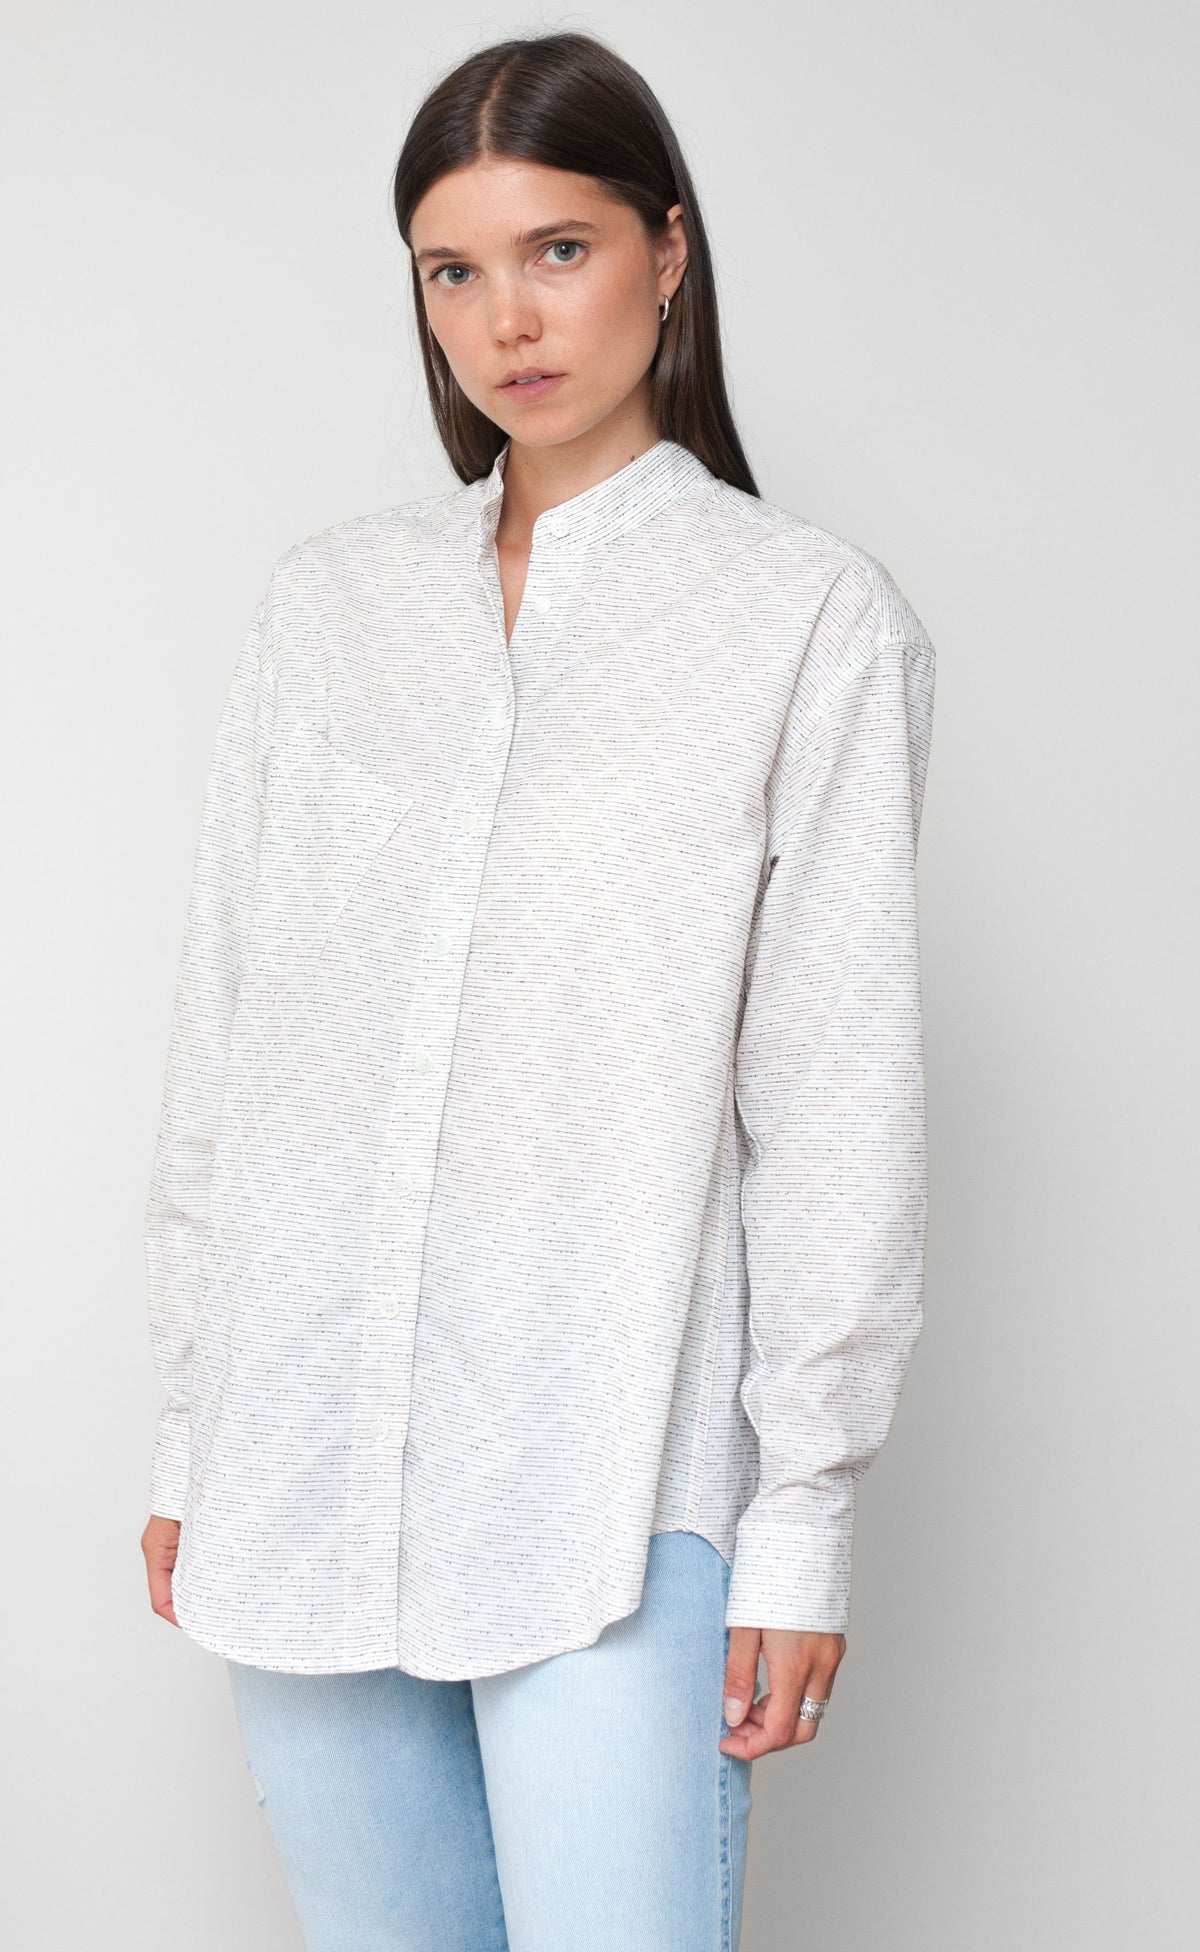 The Cultivator - Wayward Fit Tunic